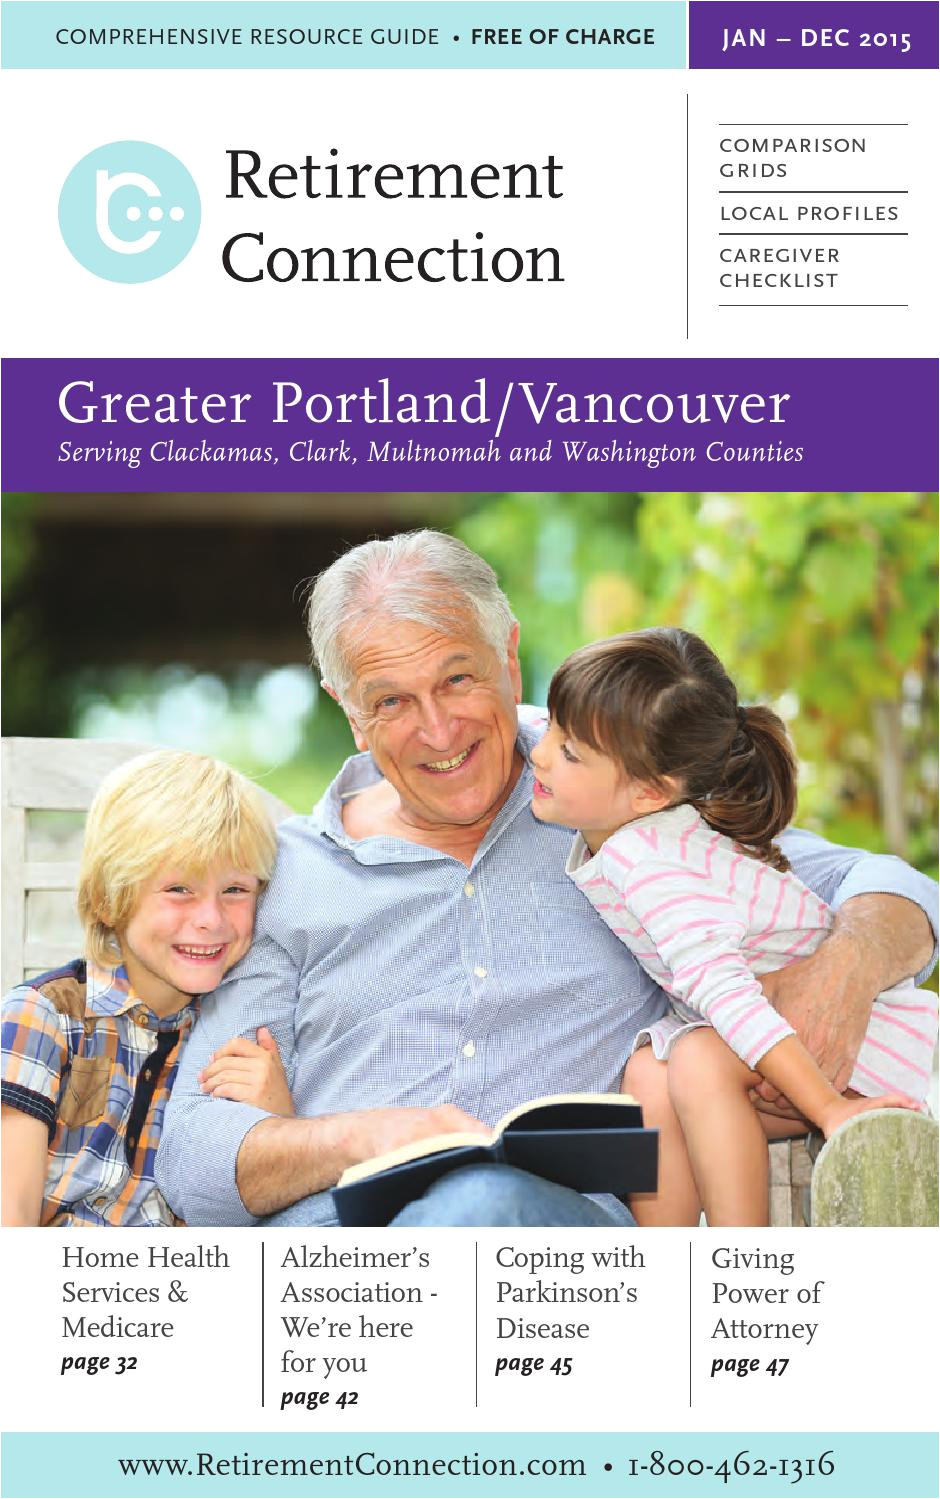 january 2015 retirement connection guide portland vancouver by retirement connection issuu